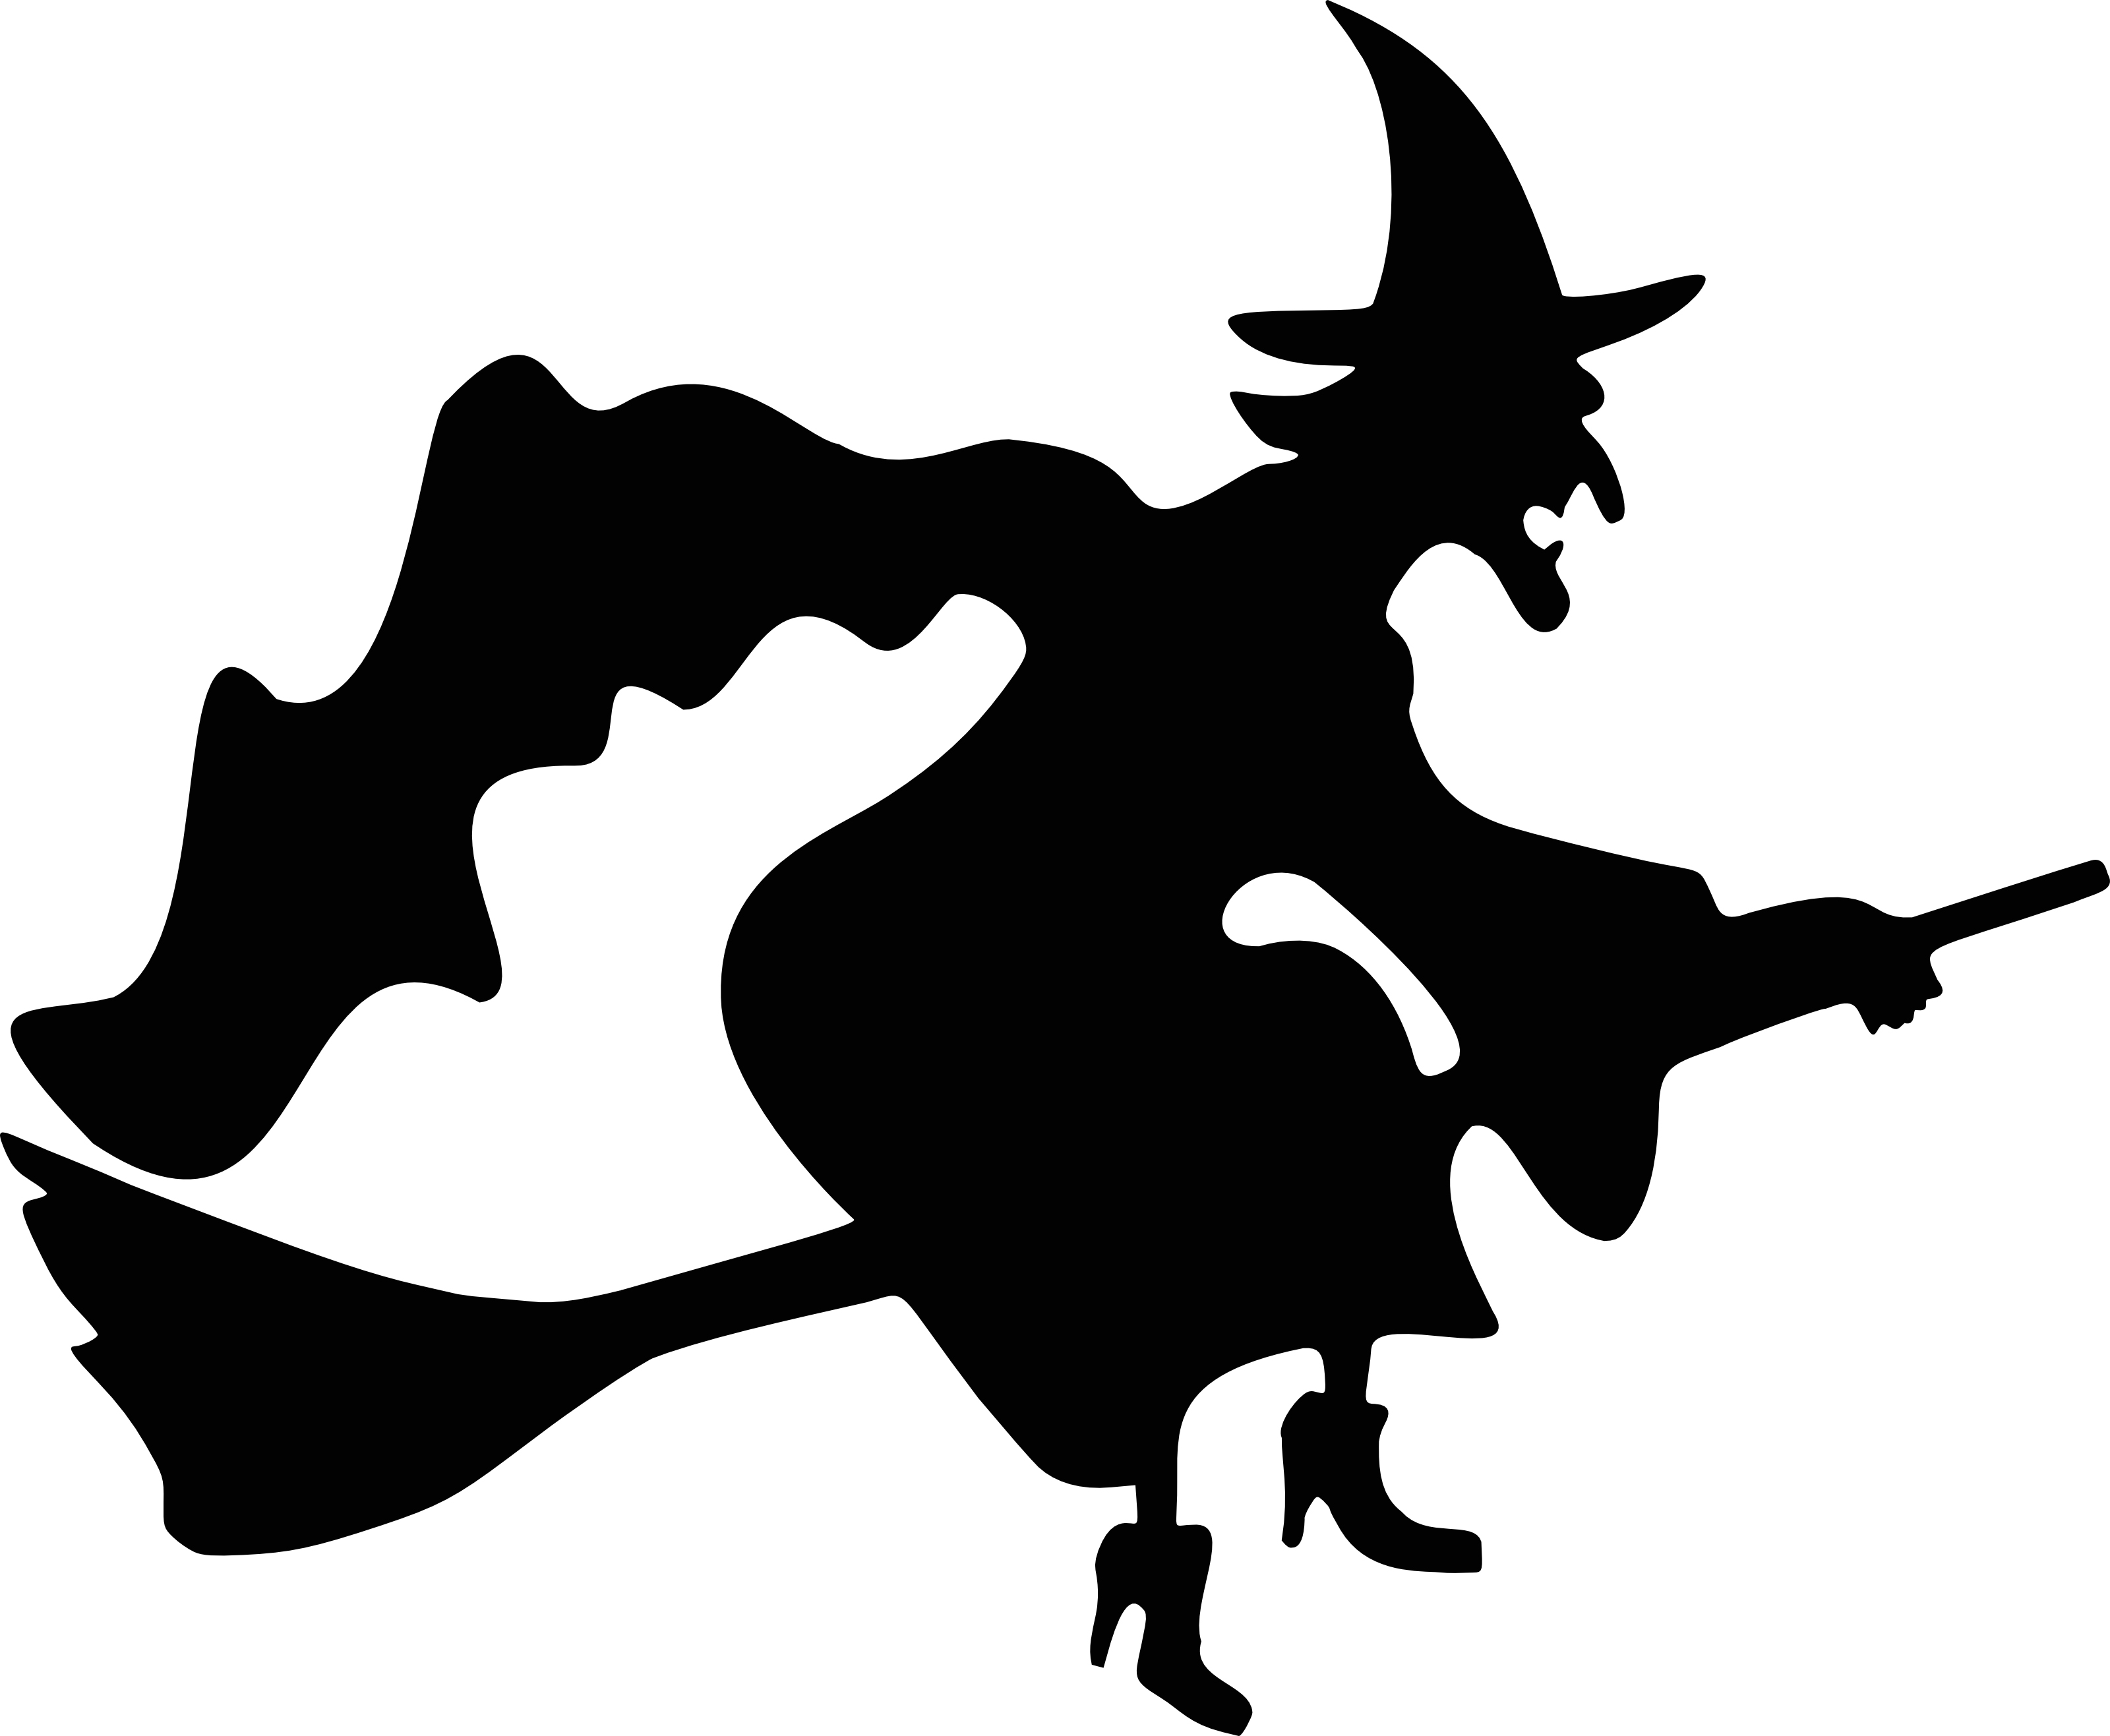 3200x2633 Free Silhouette Images Free, Hanslodge Clip Art Collection